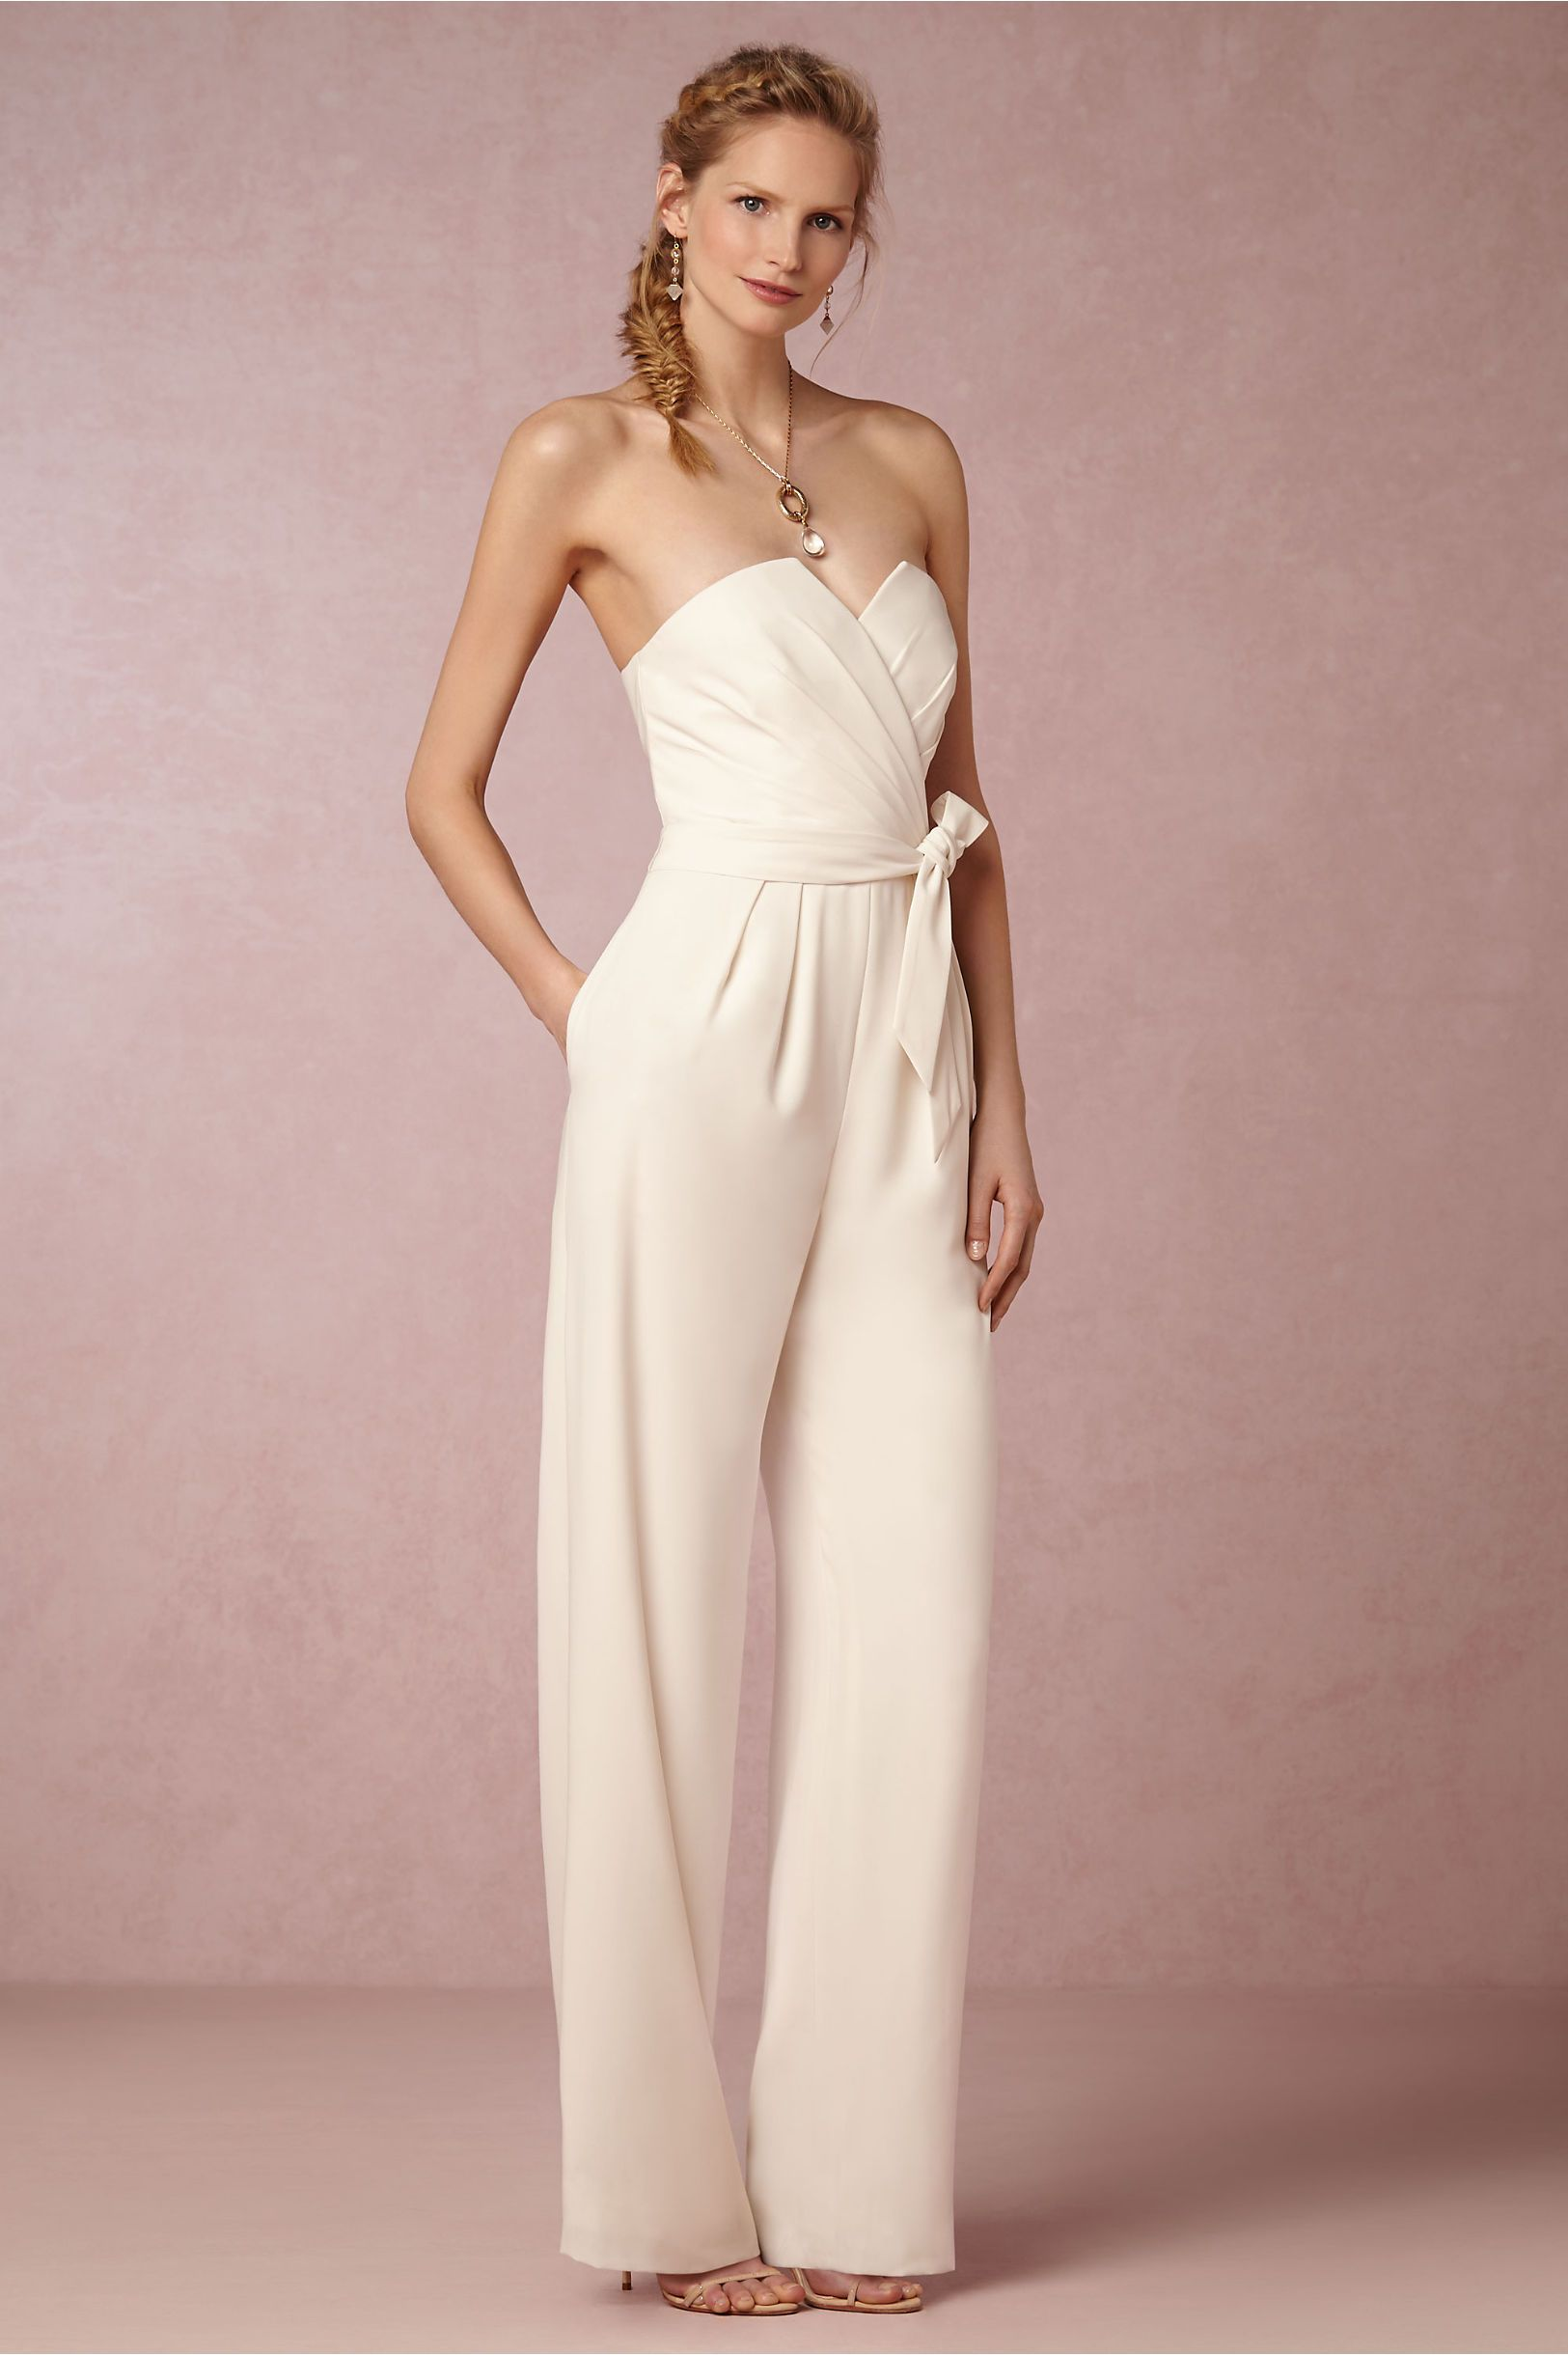 Wedding Bridal Jumpsuits lola bridal jumpsuit from bhldn city hall courthouse weddings bhldn